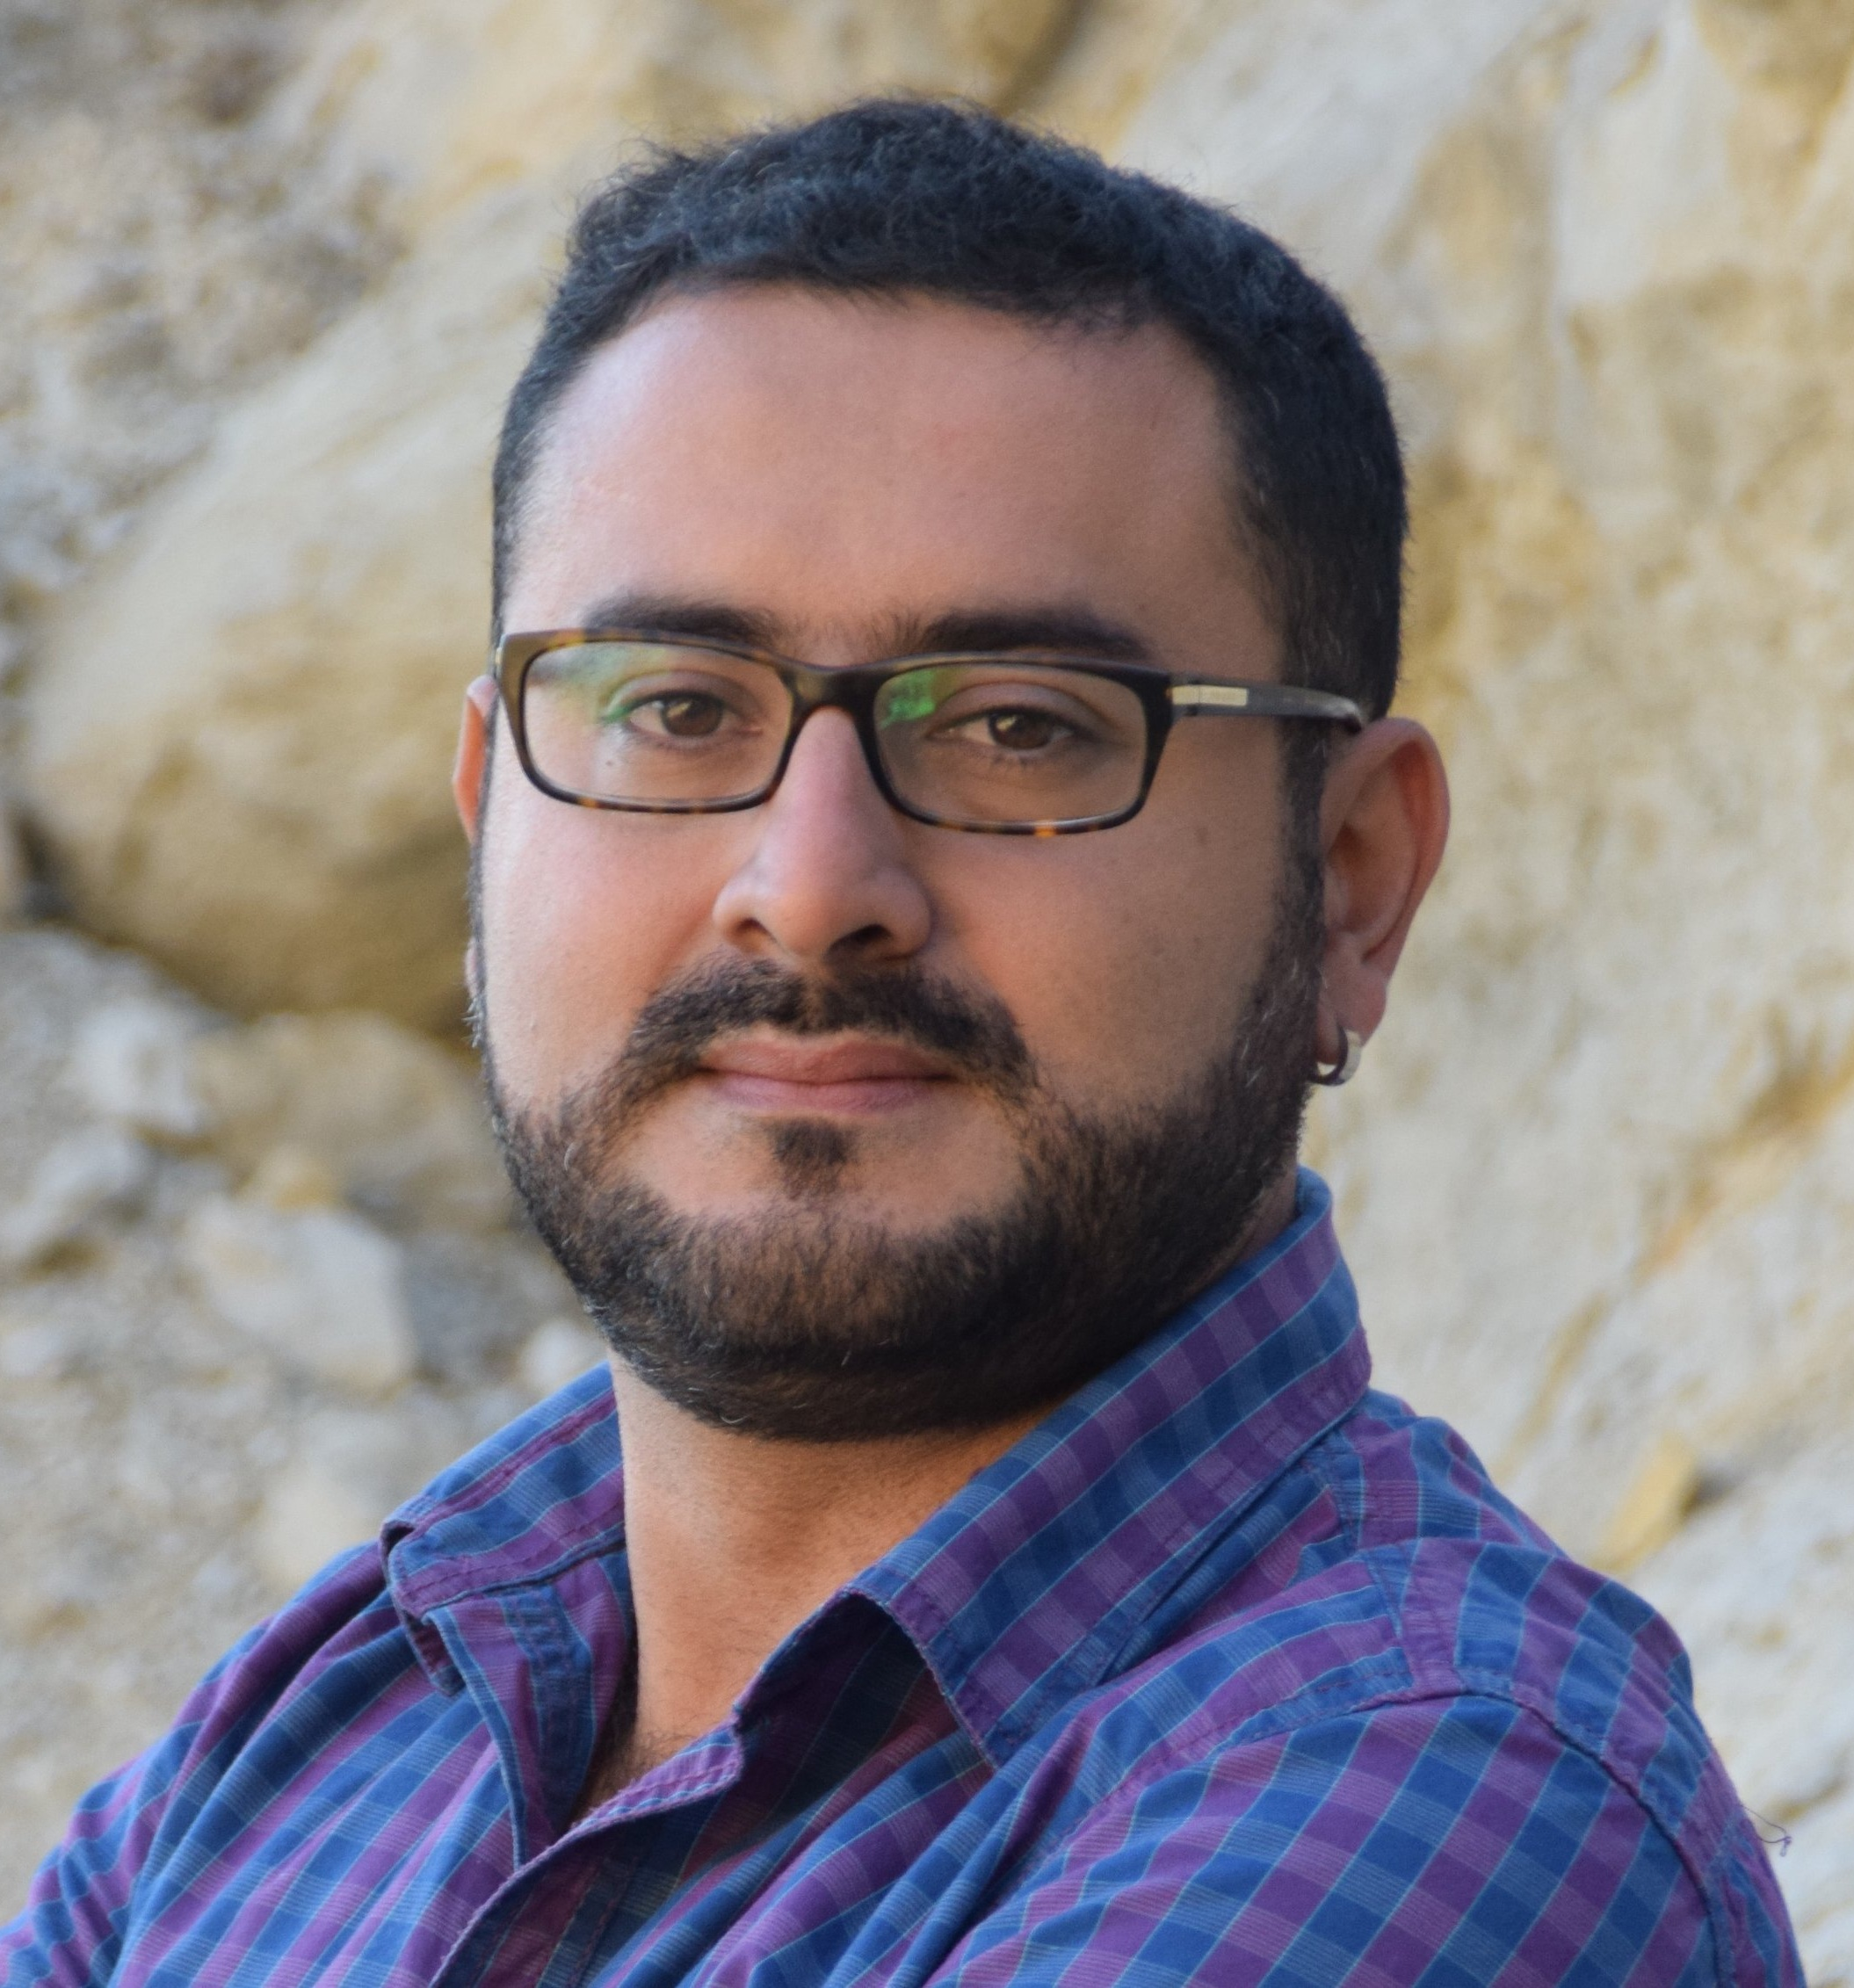 Fernando CastilloDoctoral studiesHumboldt Universität zu Berlin. - Fernando is researching urban green spaces and urban ecosystem services in Guatemala & will use Maptionnaire for further research regarding values, perceptions, and uses of urban biodiversity in Guatemalan cities.